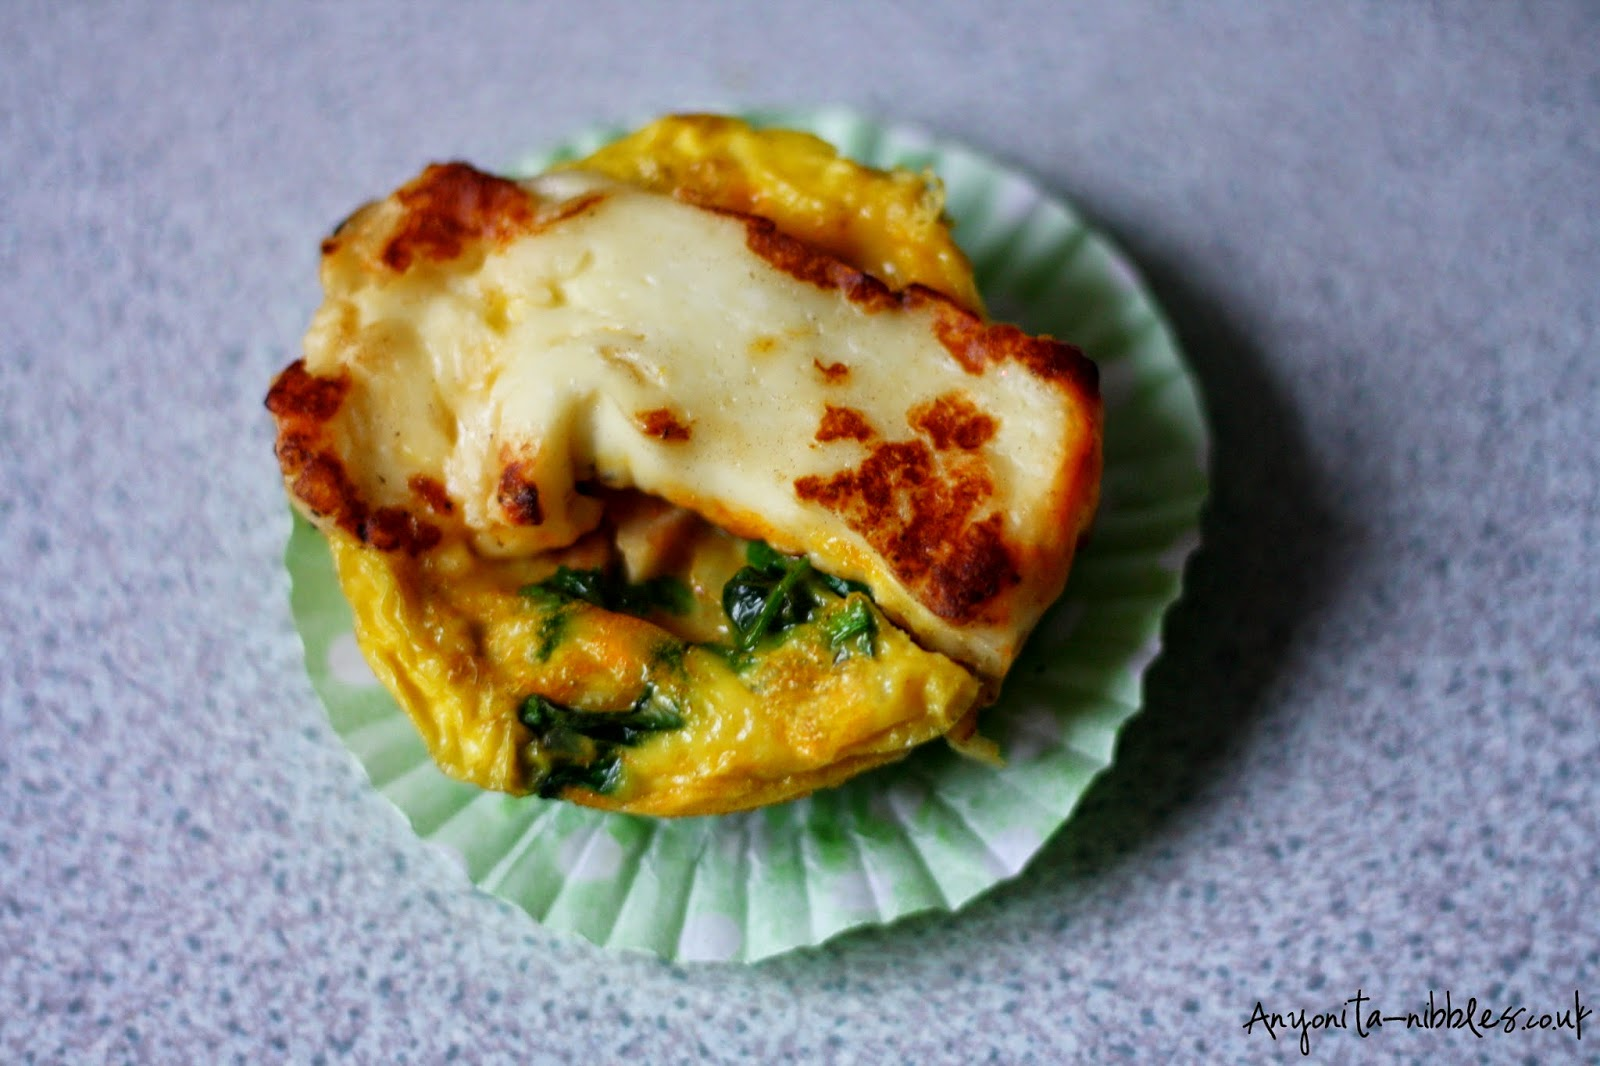 A frittata muffin with fried halloumi on top from Anyonita-nibbles.co.uk